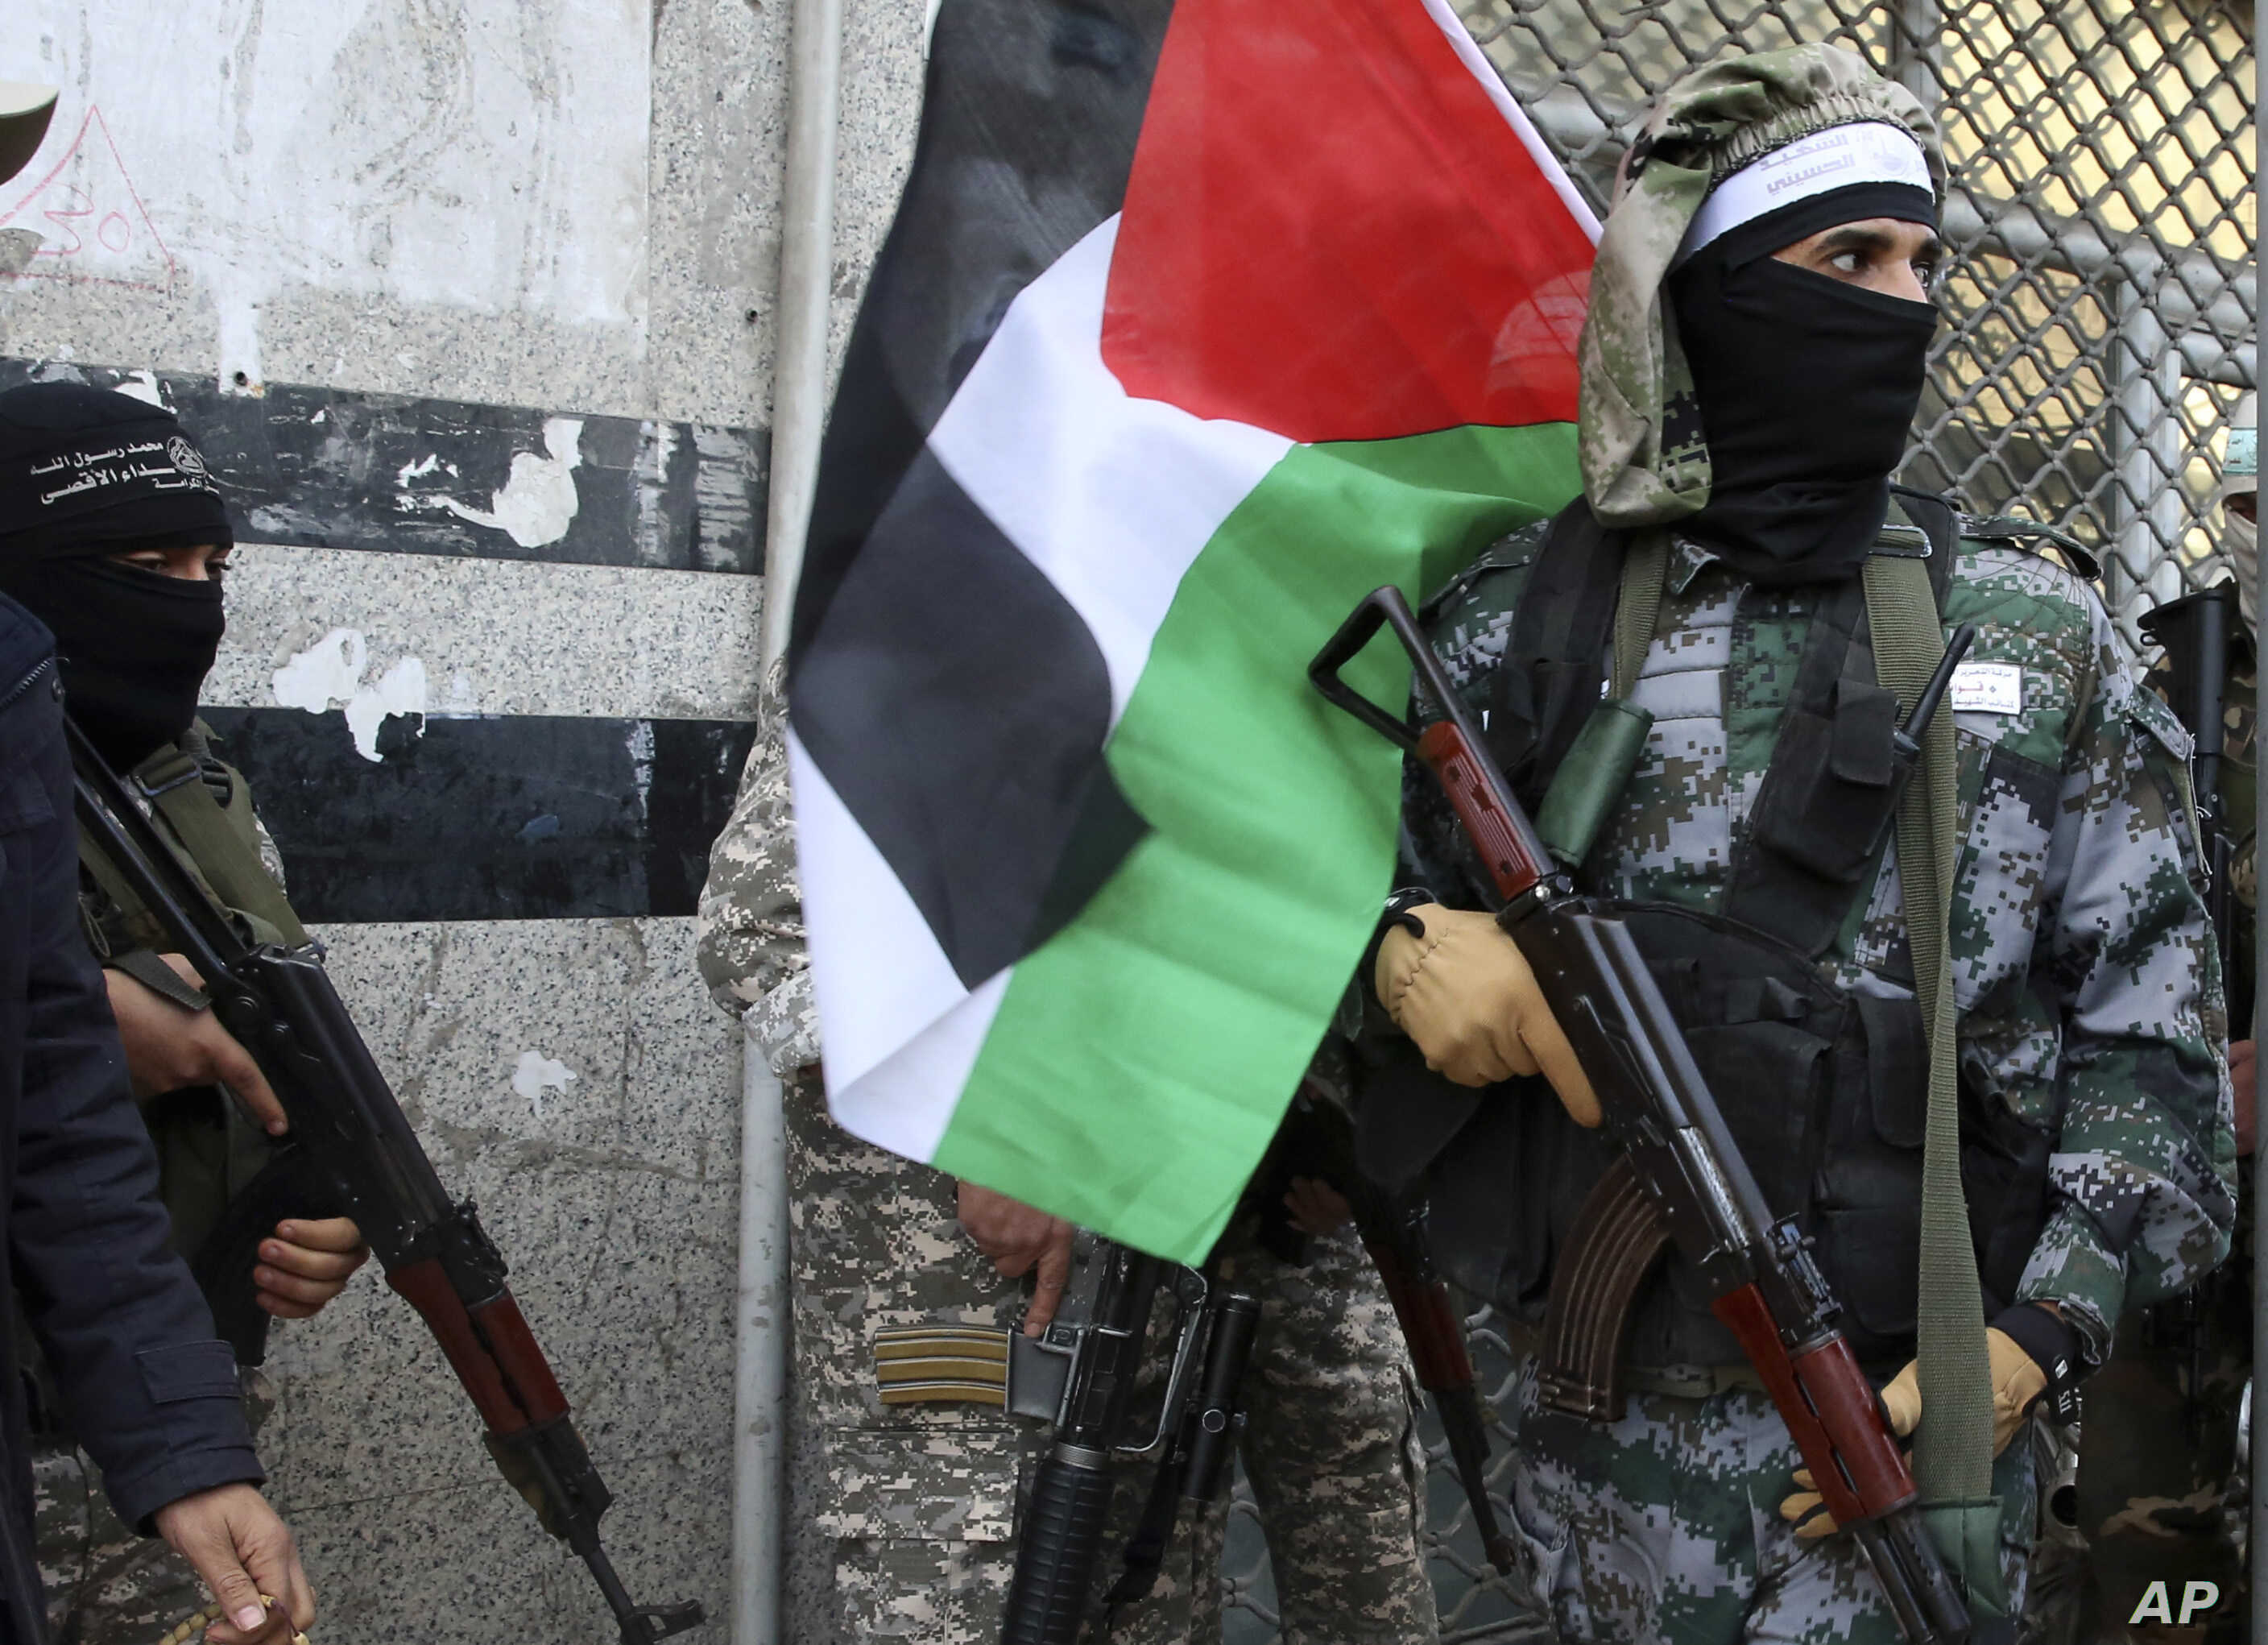 Masked militants from Al Aqsa Martyrs' Brigade, a militia linked to the Fatah movement, hold their rifles and the Palestinian flag during a protest to condemn the decision by President Trump to recognize Jerusalem as Israel's capital, in Gaza City, D...